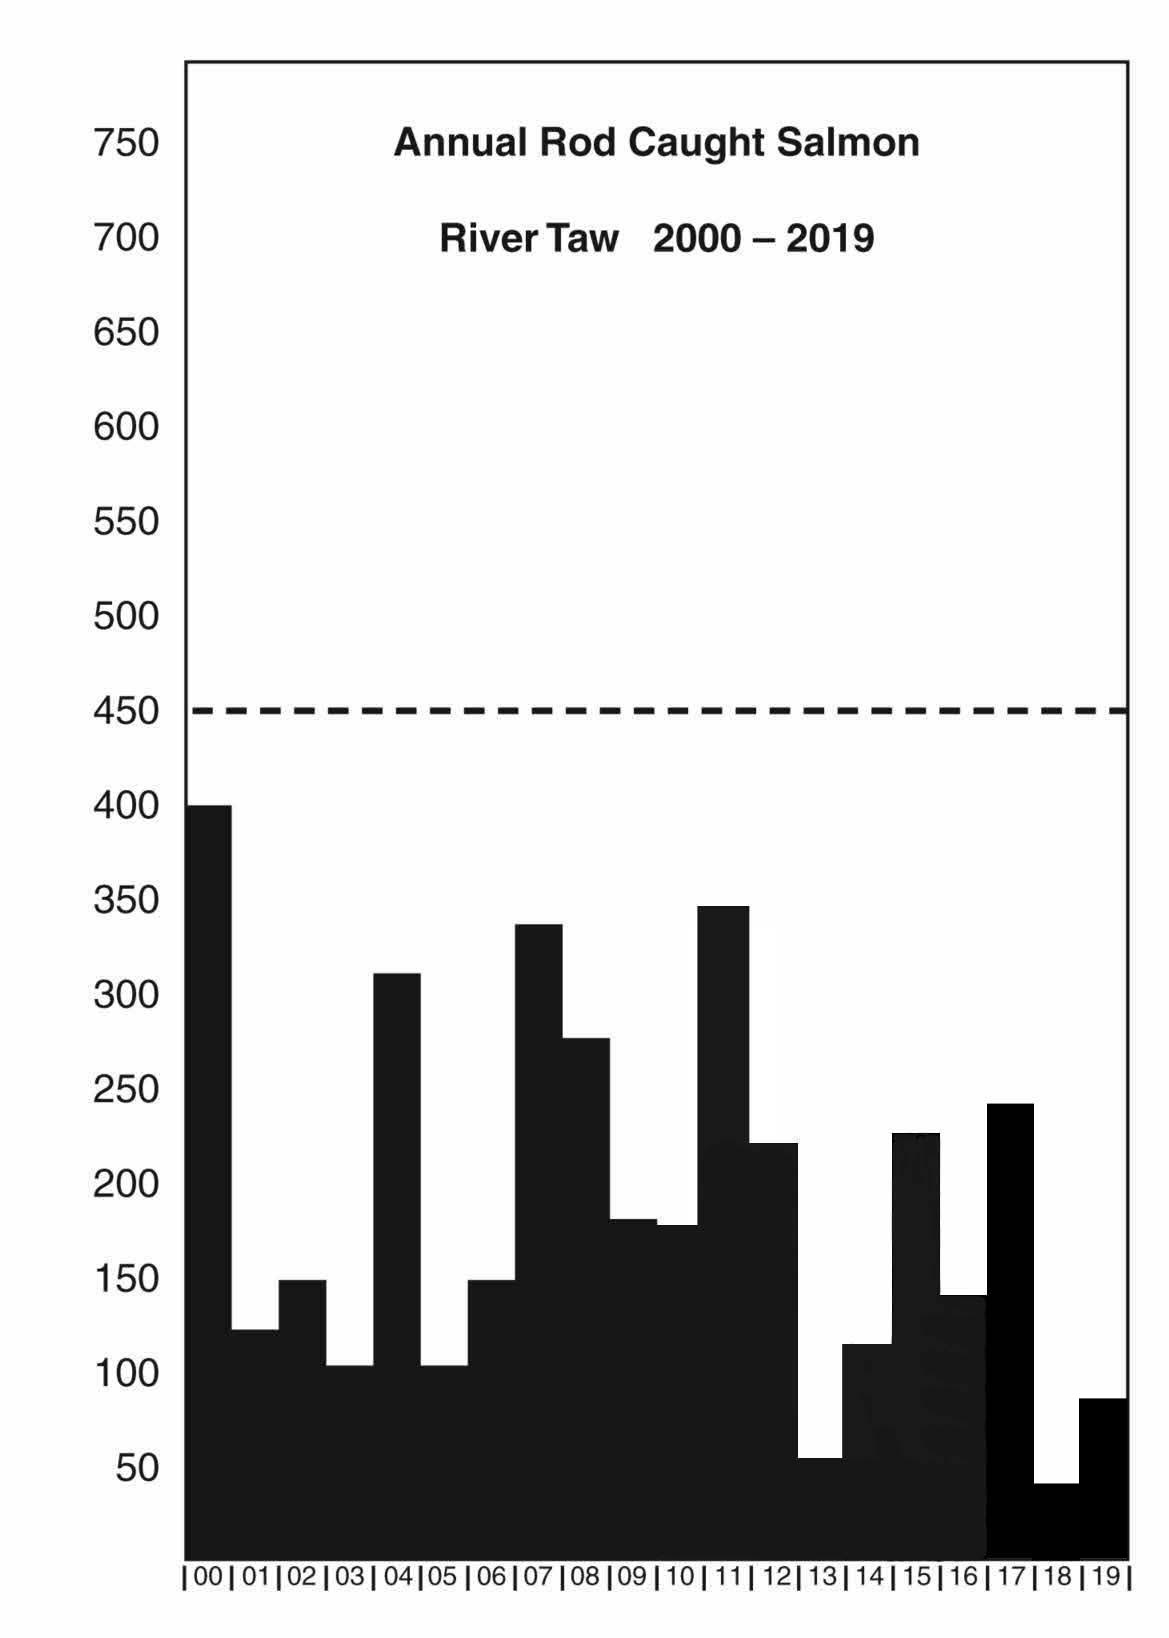 Annual Rod Caught Salmon - River Taw - 2000 to 2019